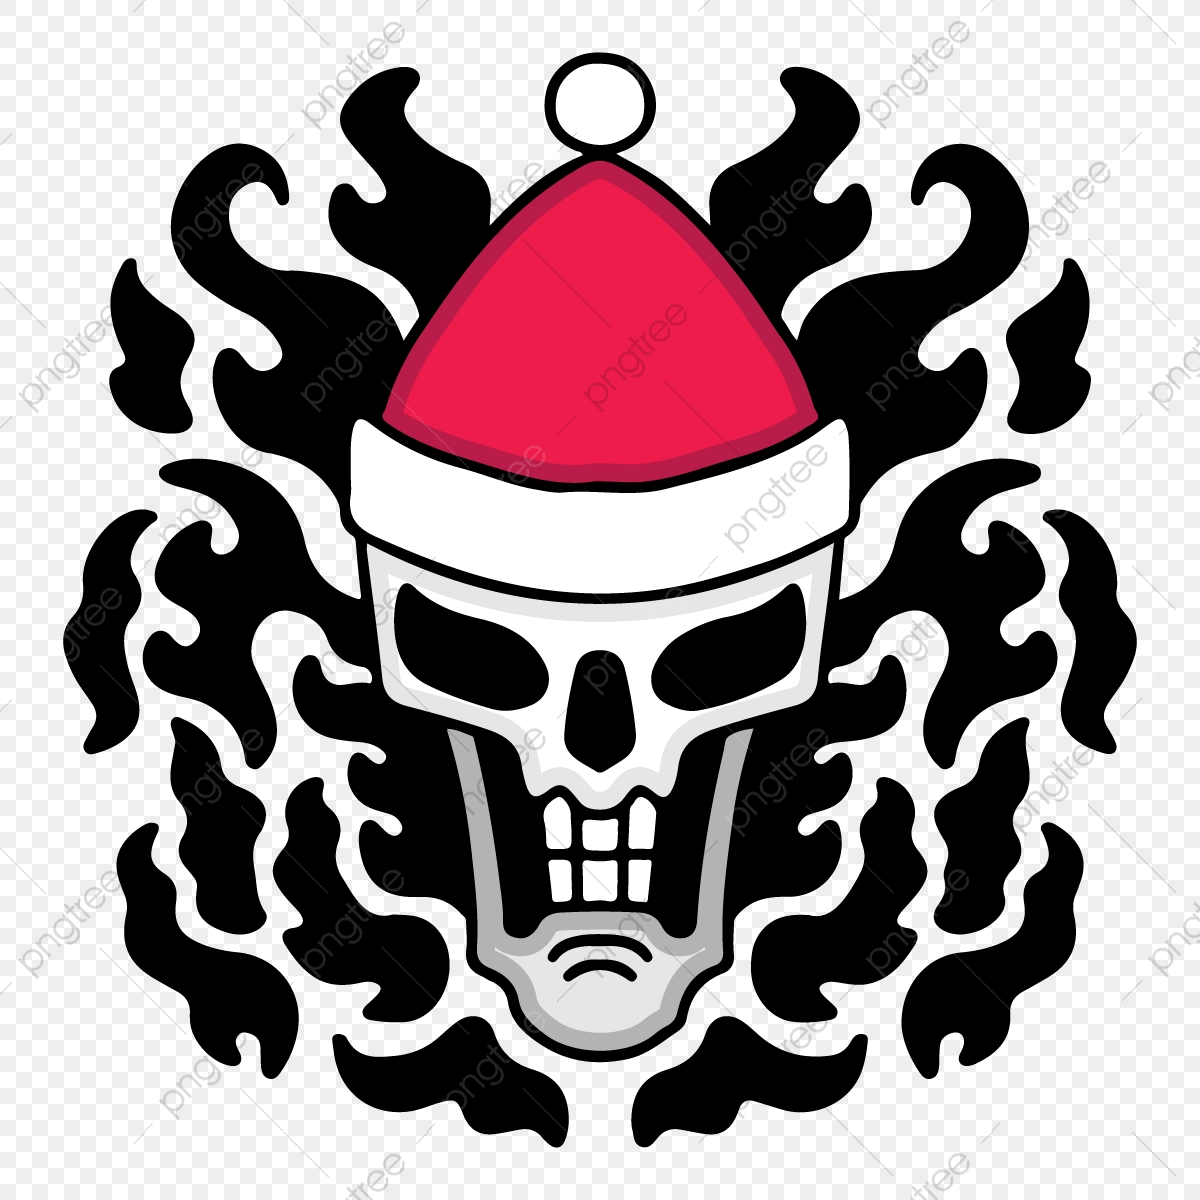 pngtree illustration of a cool skull wearing santa claus hat hand draw png image